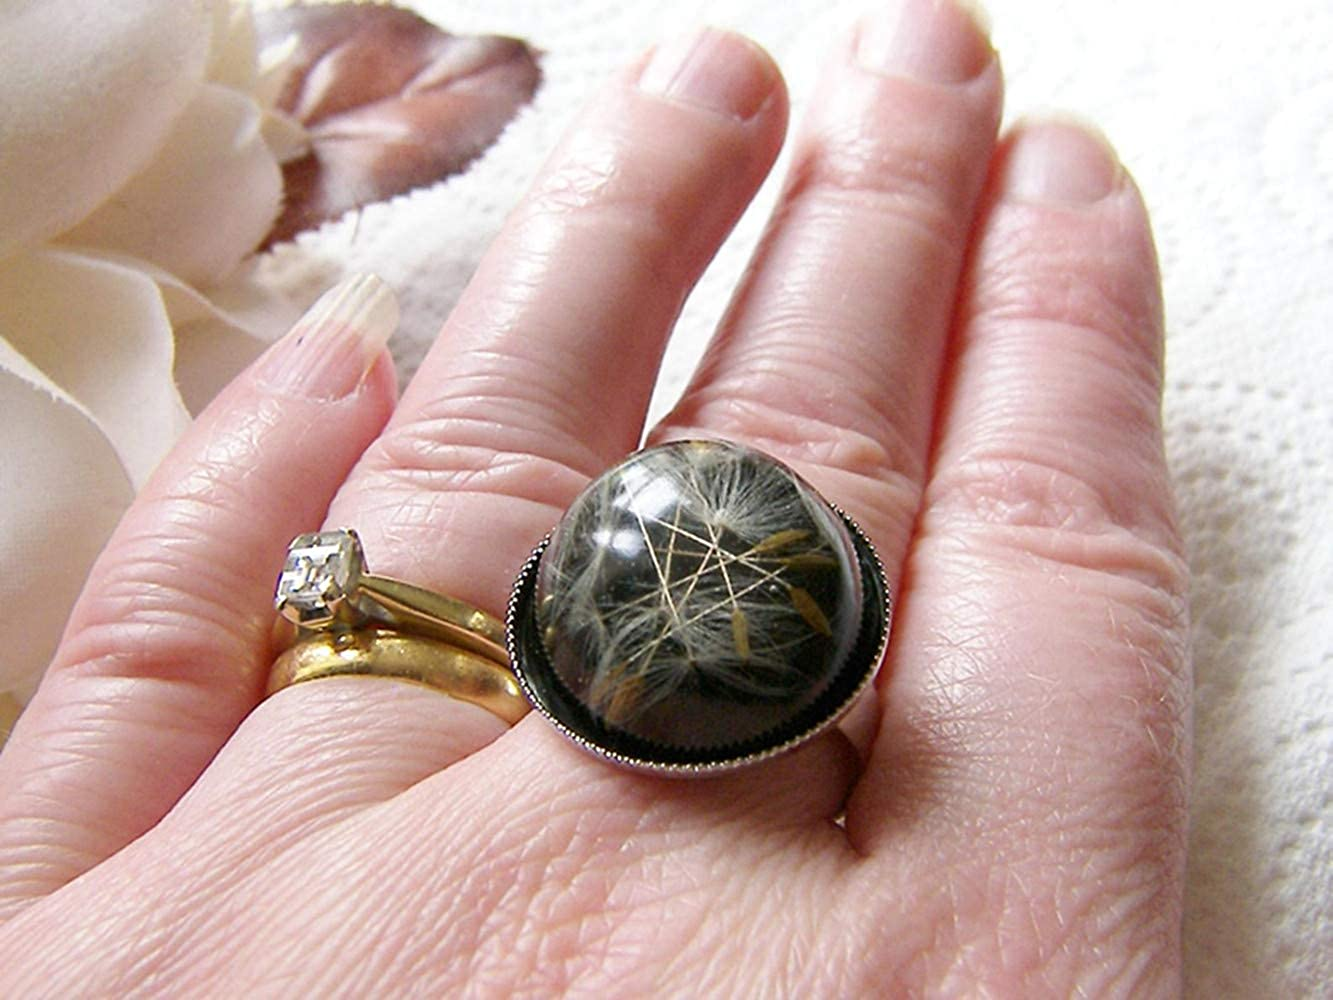 Eco Friendly Resin Ring Black Resin Ring Make a Wish Resin Jewellery Nature Specimen Dandelion Real Seeds Ring